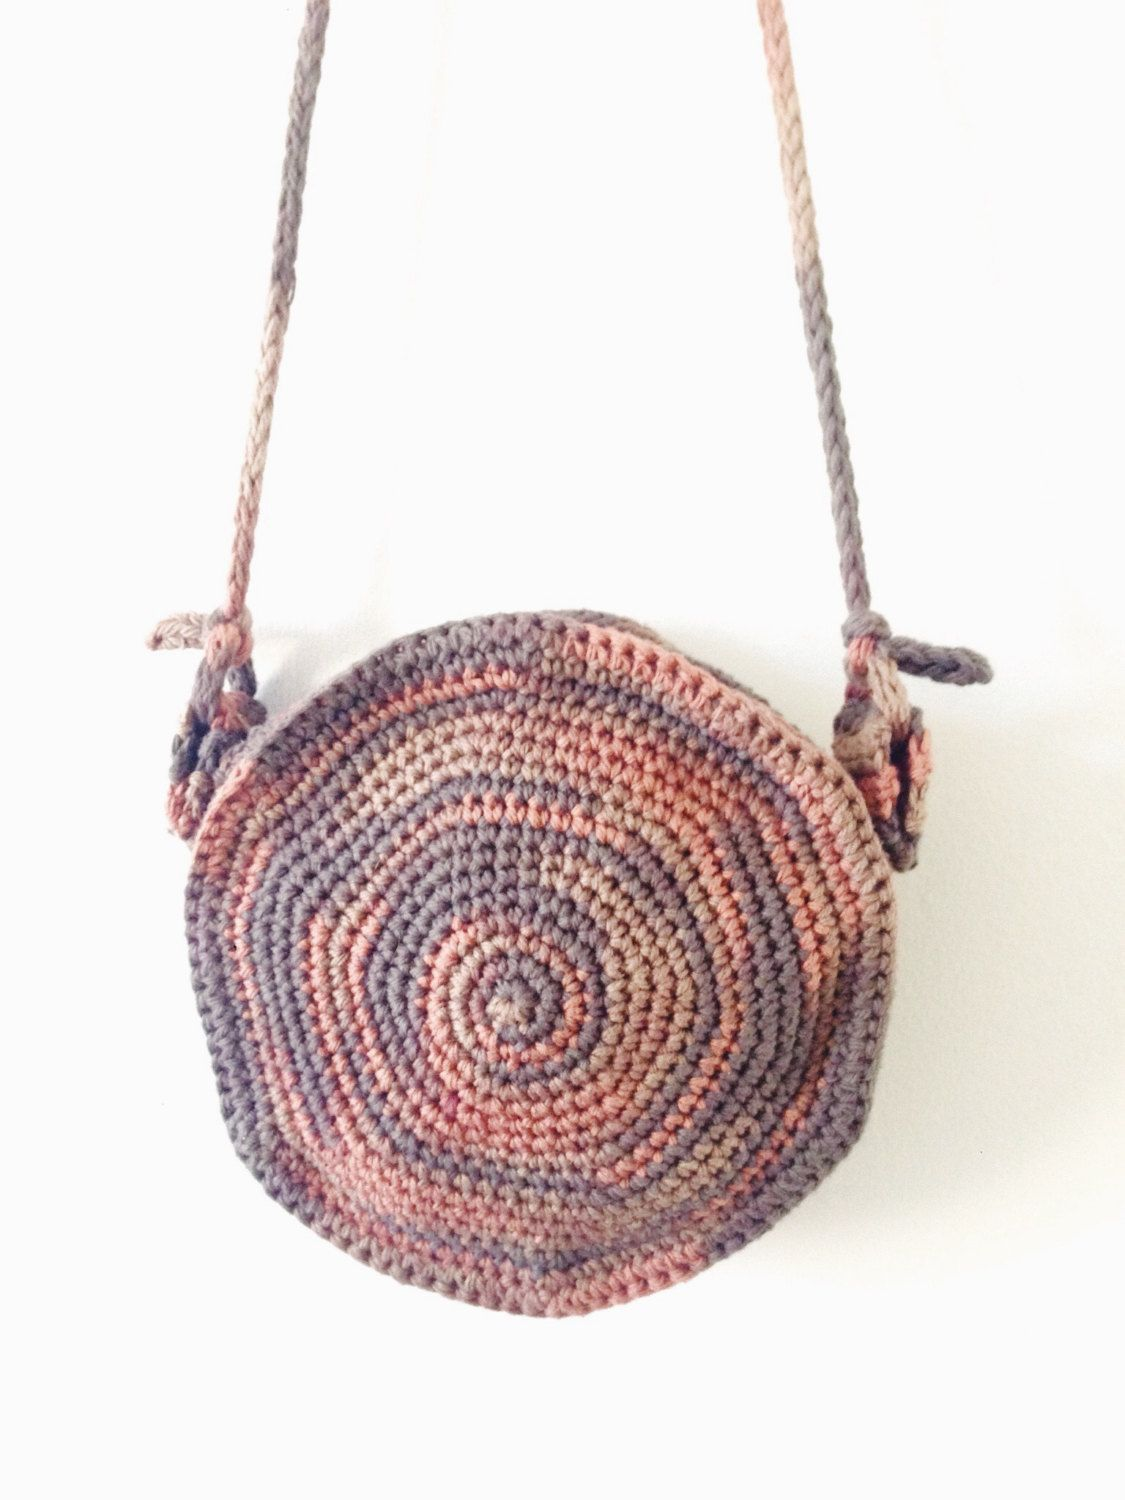 Fun Crochet Pattern: Boho Circle Bag! | Crochet Envy | Pinterest ...